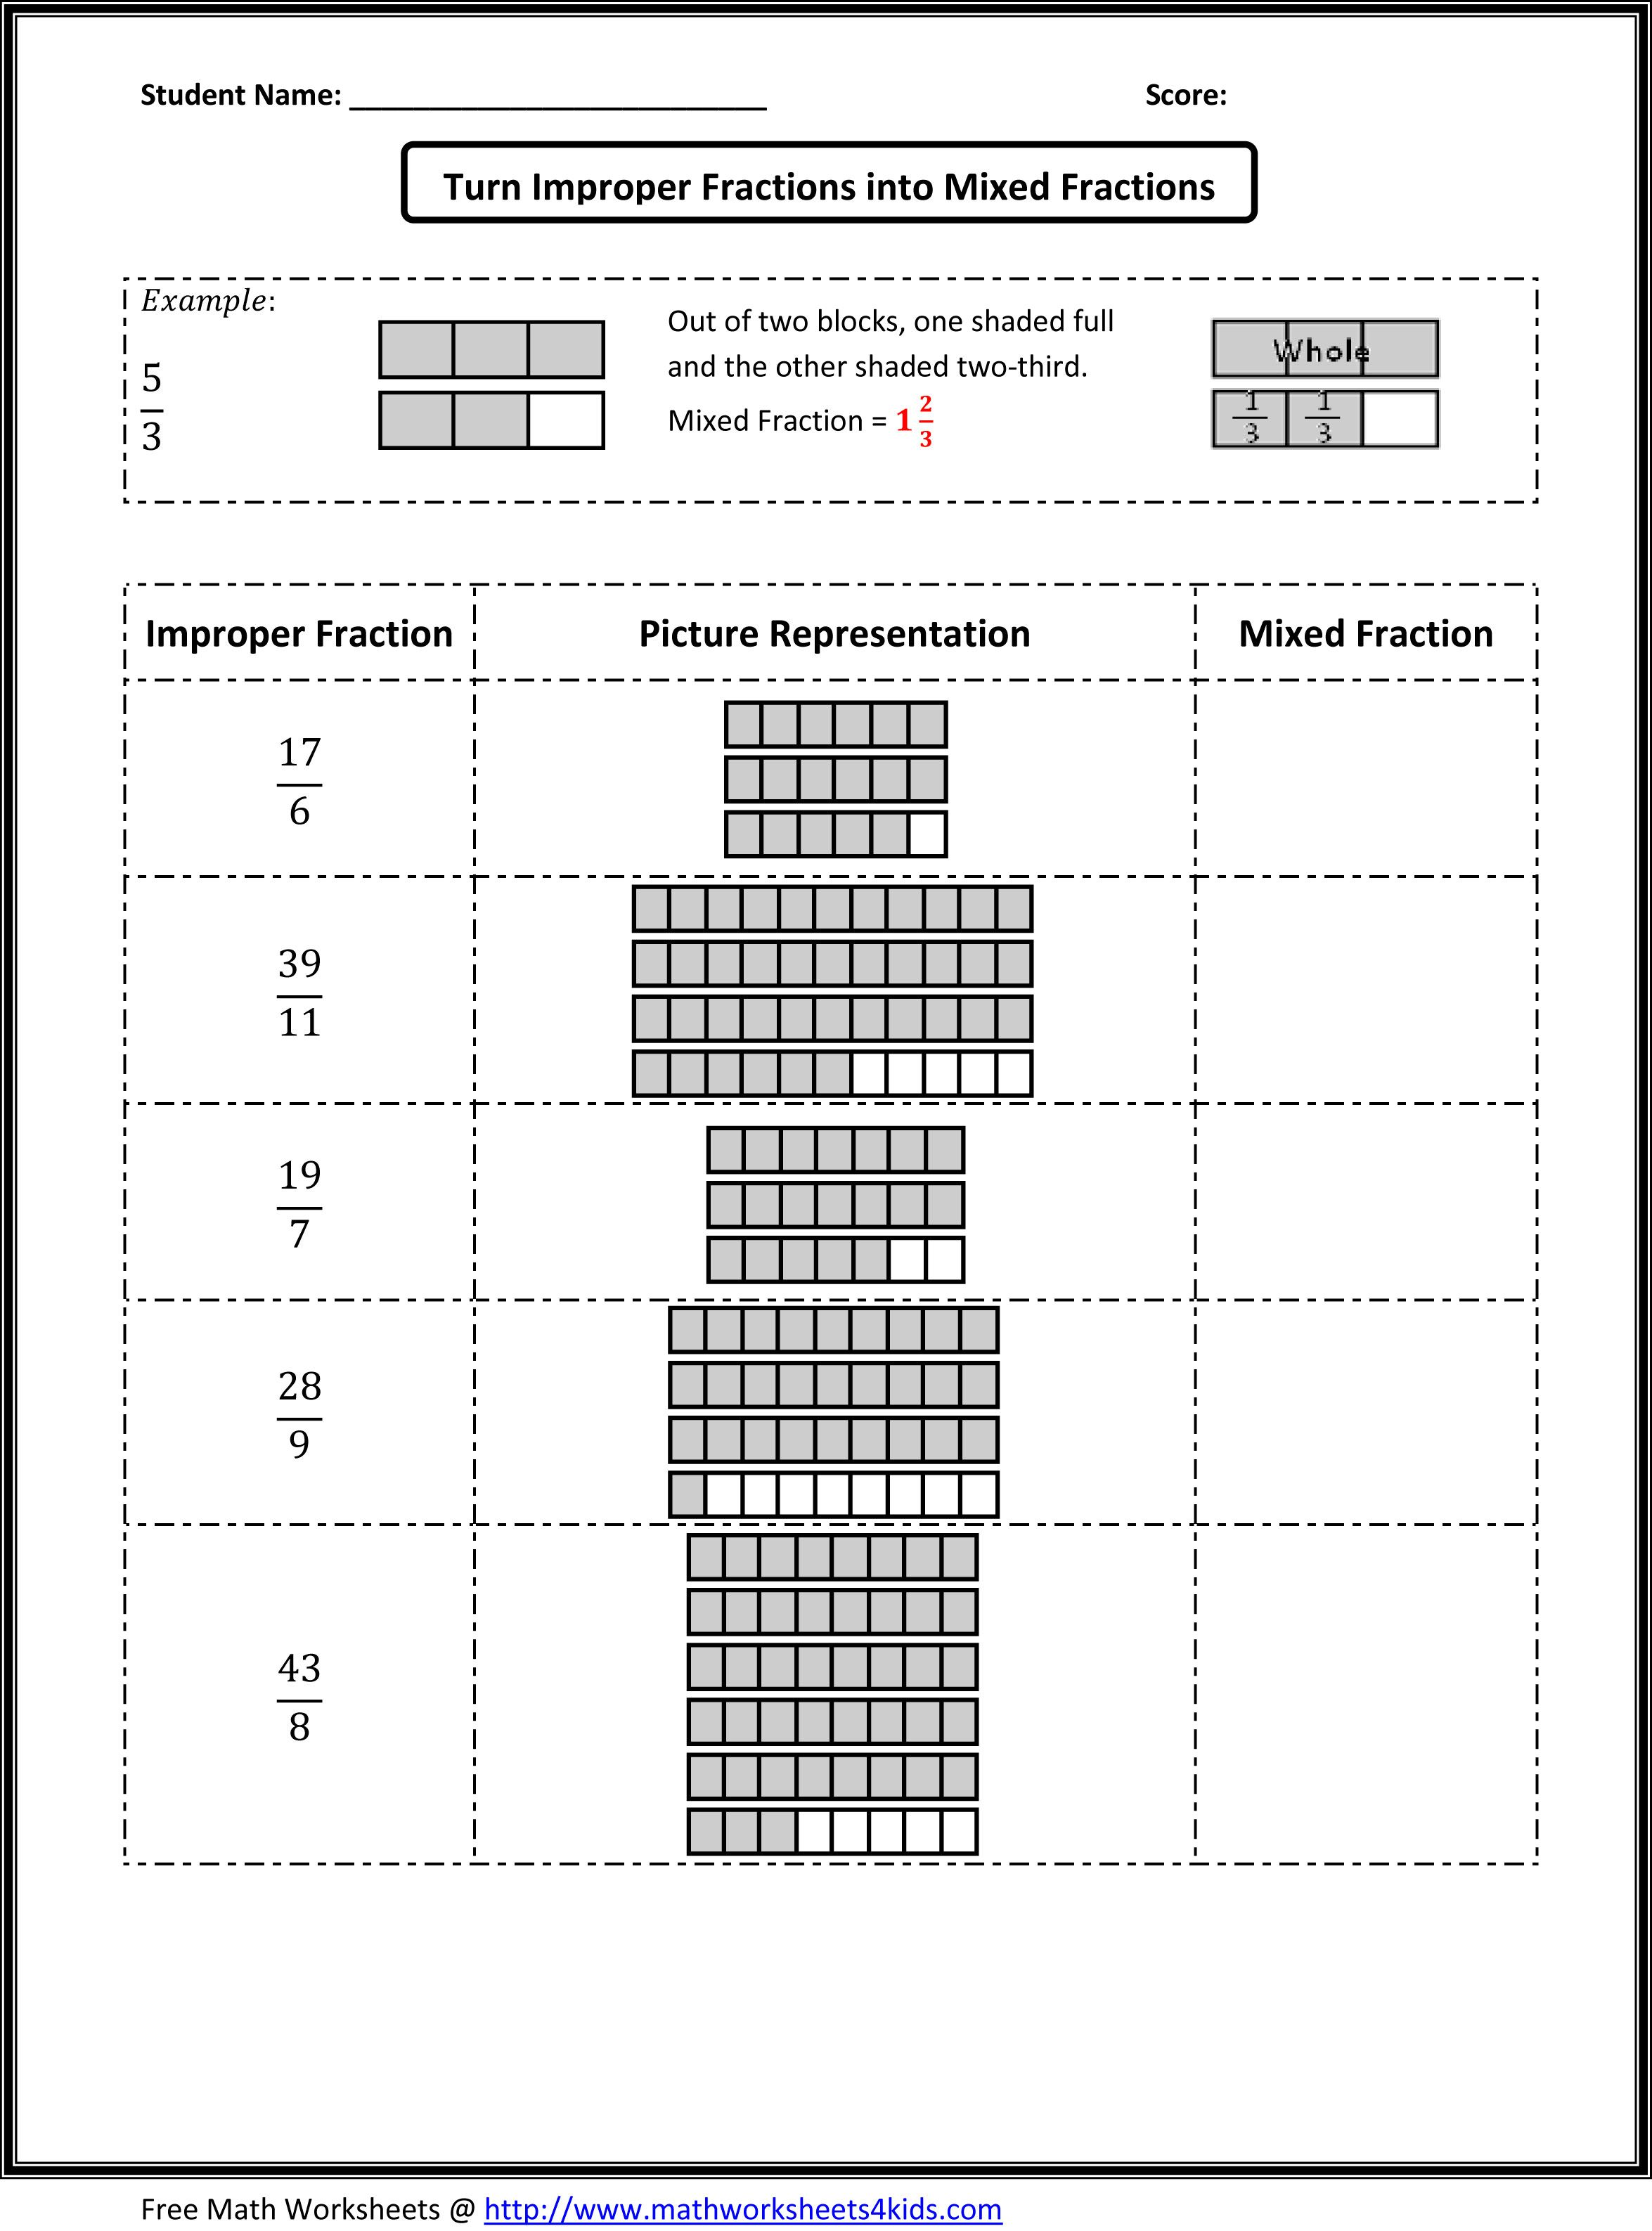 Xrhyming Words Worksheets   Pagespeed Ic Gvawxzj Br moreover D D C B Fc D E together with Original as well Thumb Gif moreover Kindergarten Lesson Plans Multiplying Decimals Multiplication Pictures On Math Decimal Games Subtracting Dividing Quiz Worksheet Adding Worksheets Easy Ideas. on multiplication worksheet grade 6